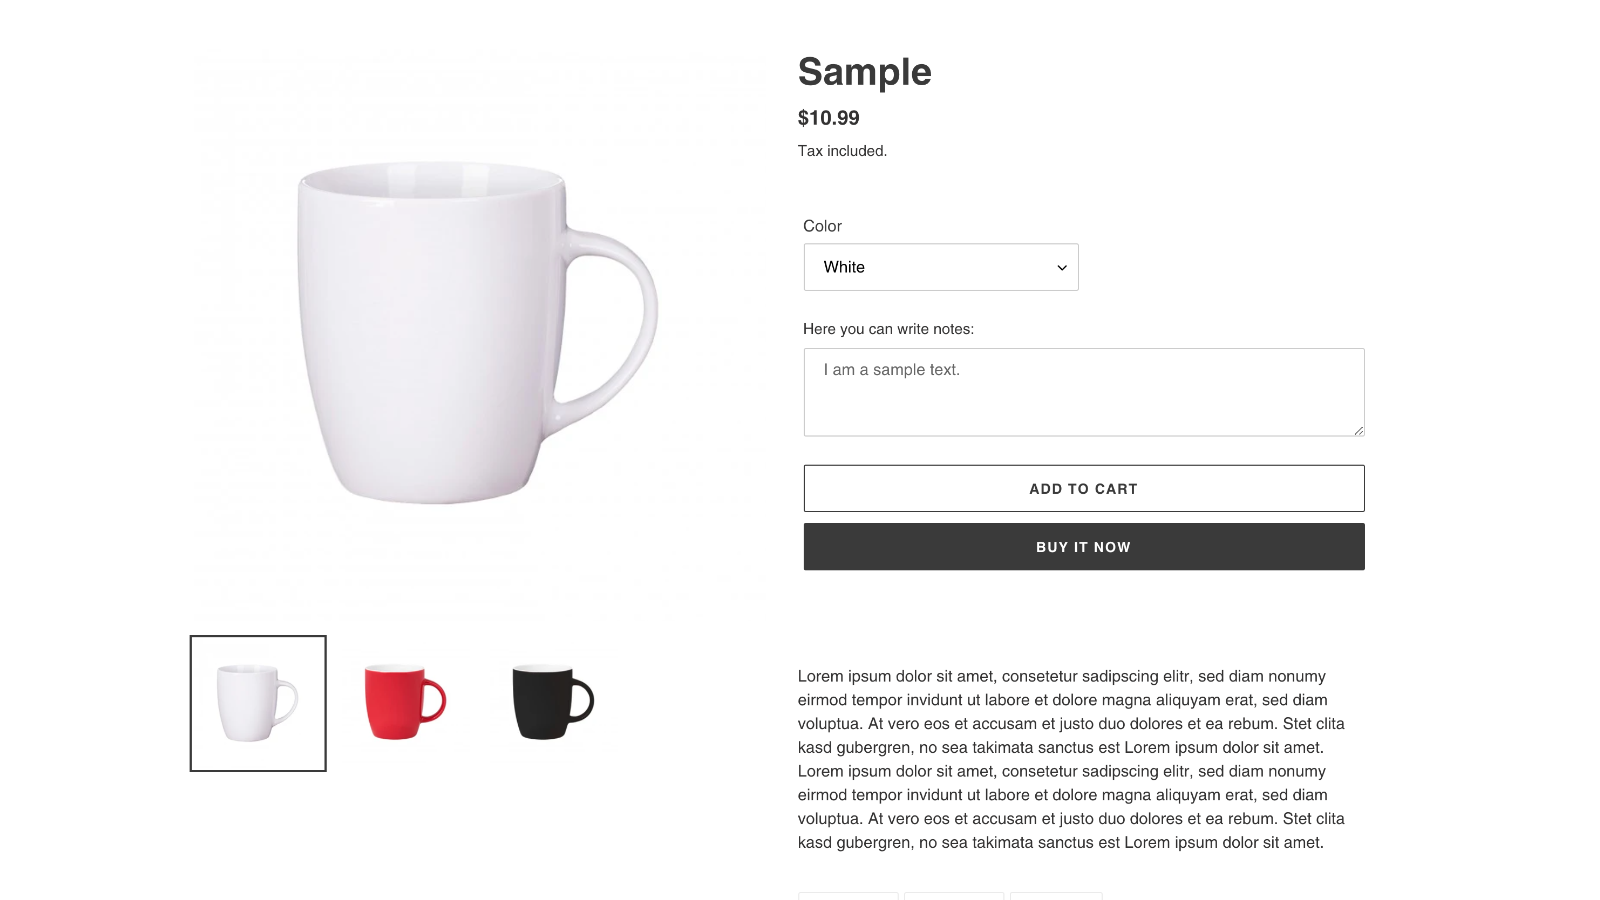 Textfield on product page - Custom field for text and notes